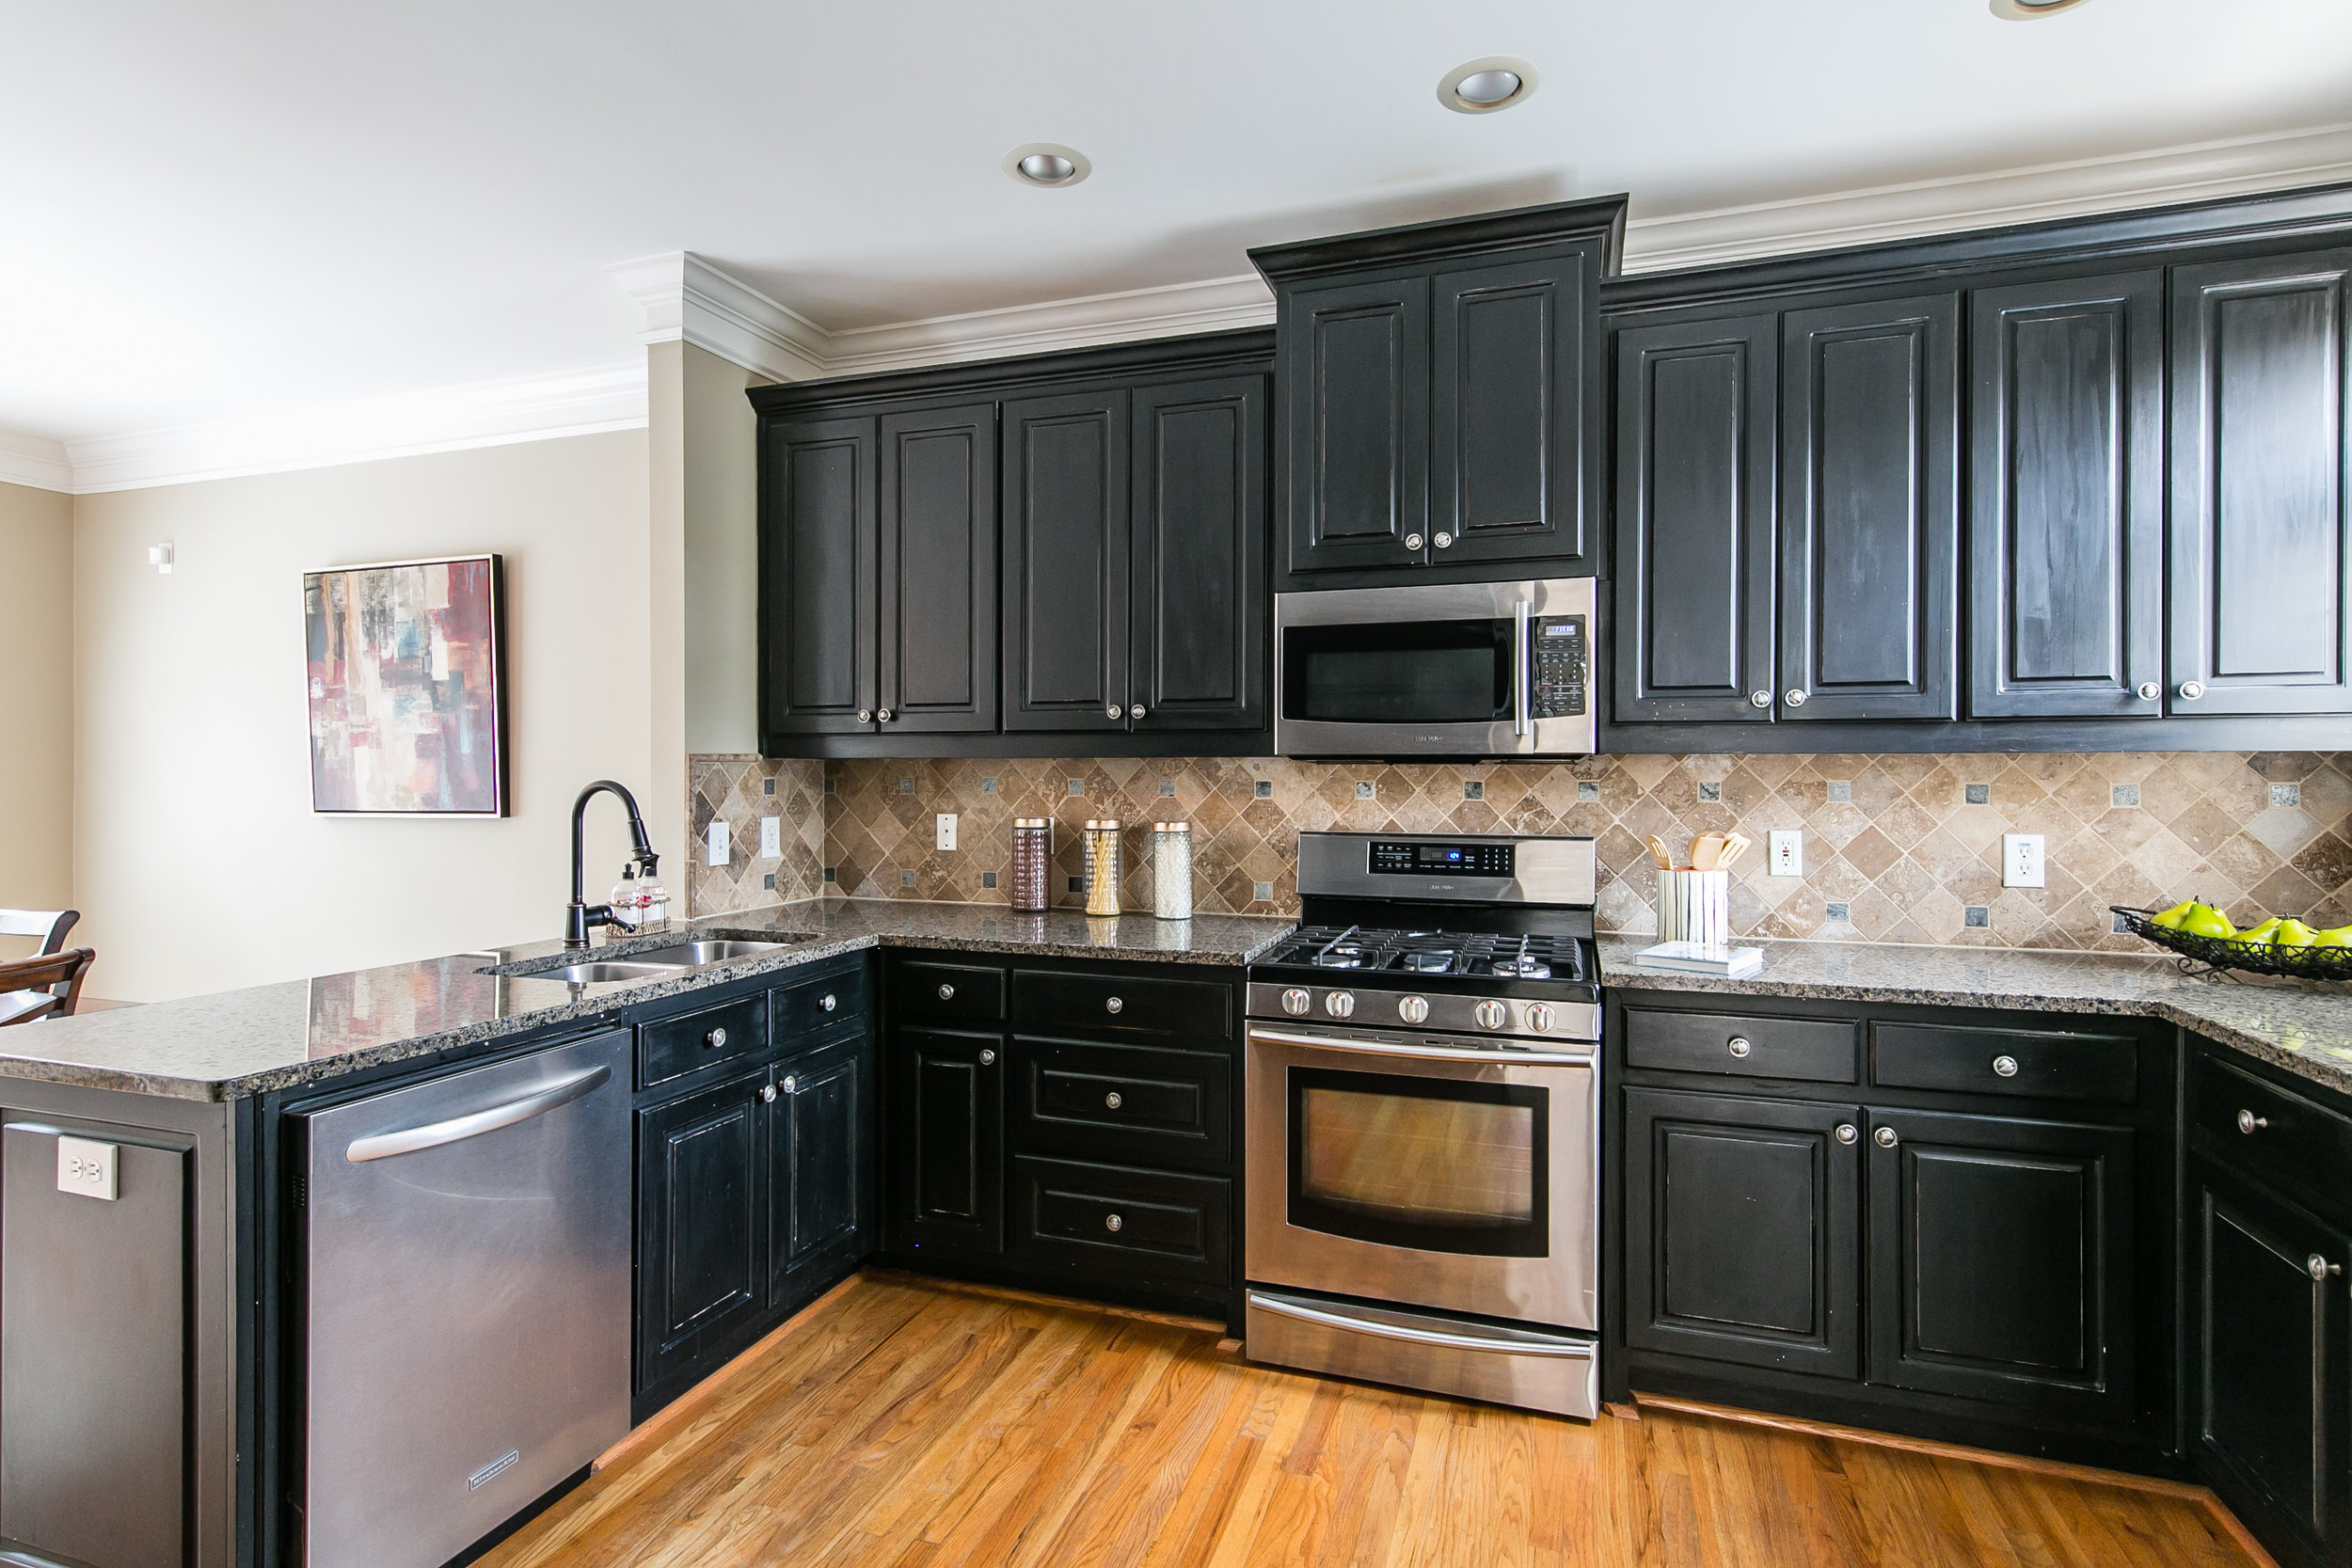 2456 Piedmont Unit 2-Kitchen 1.jpg